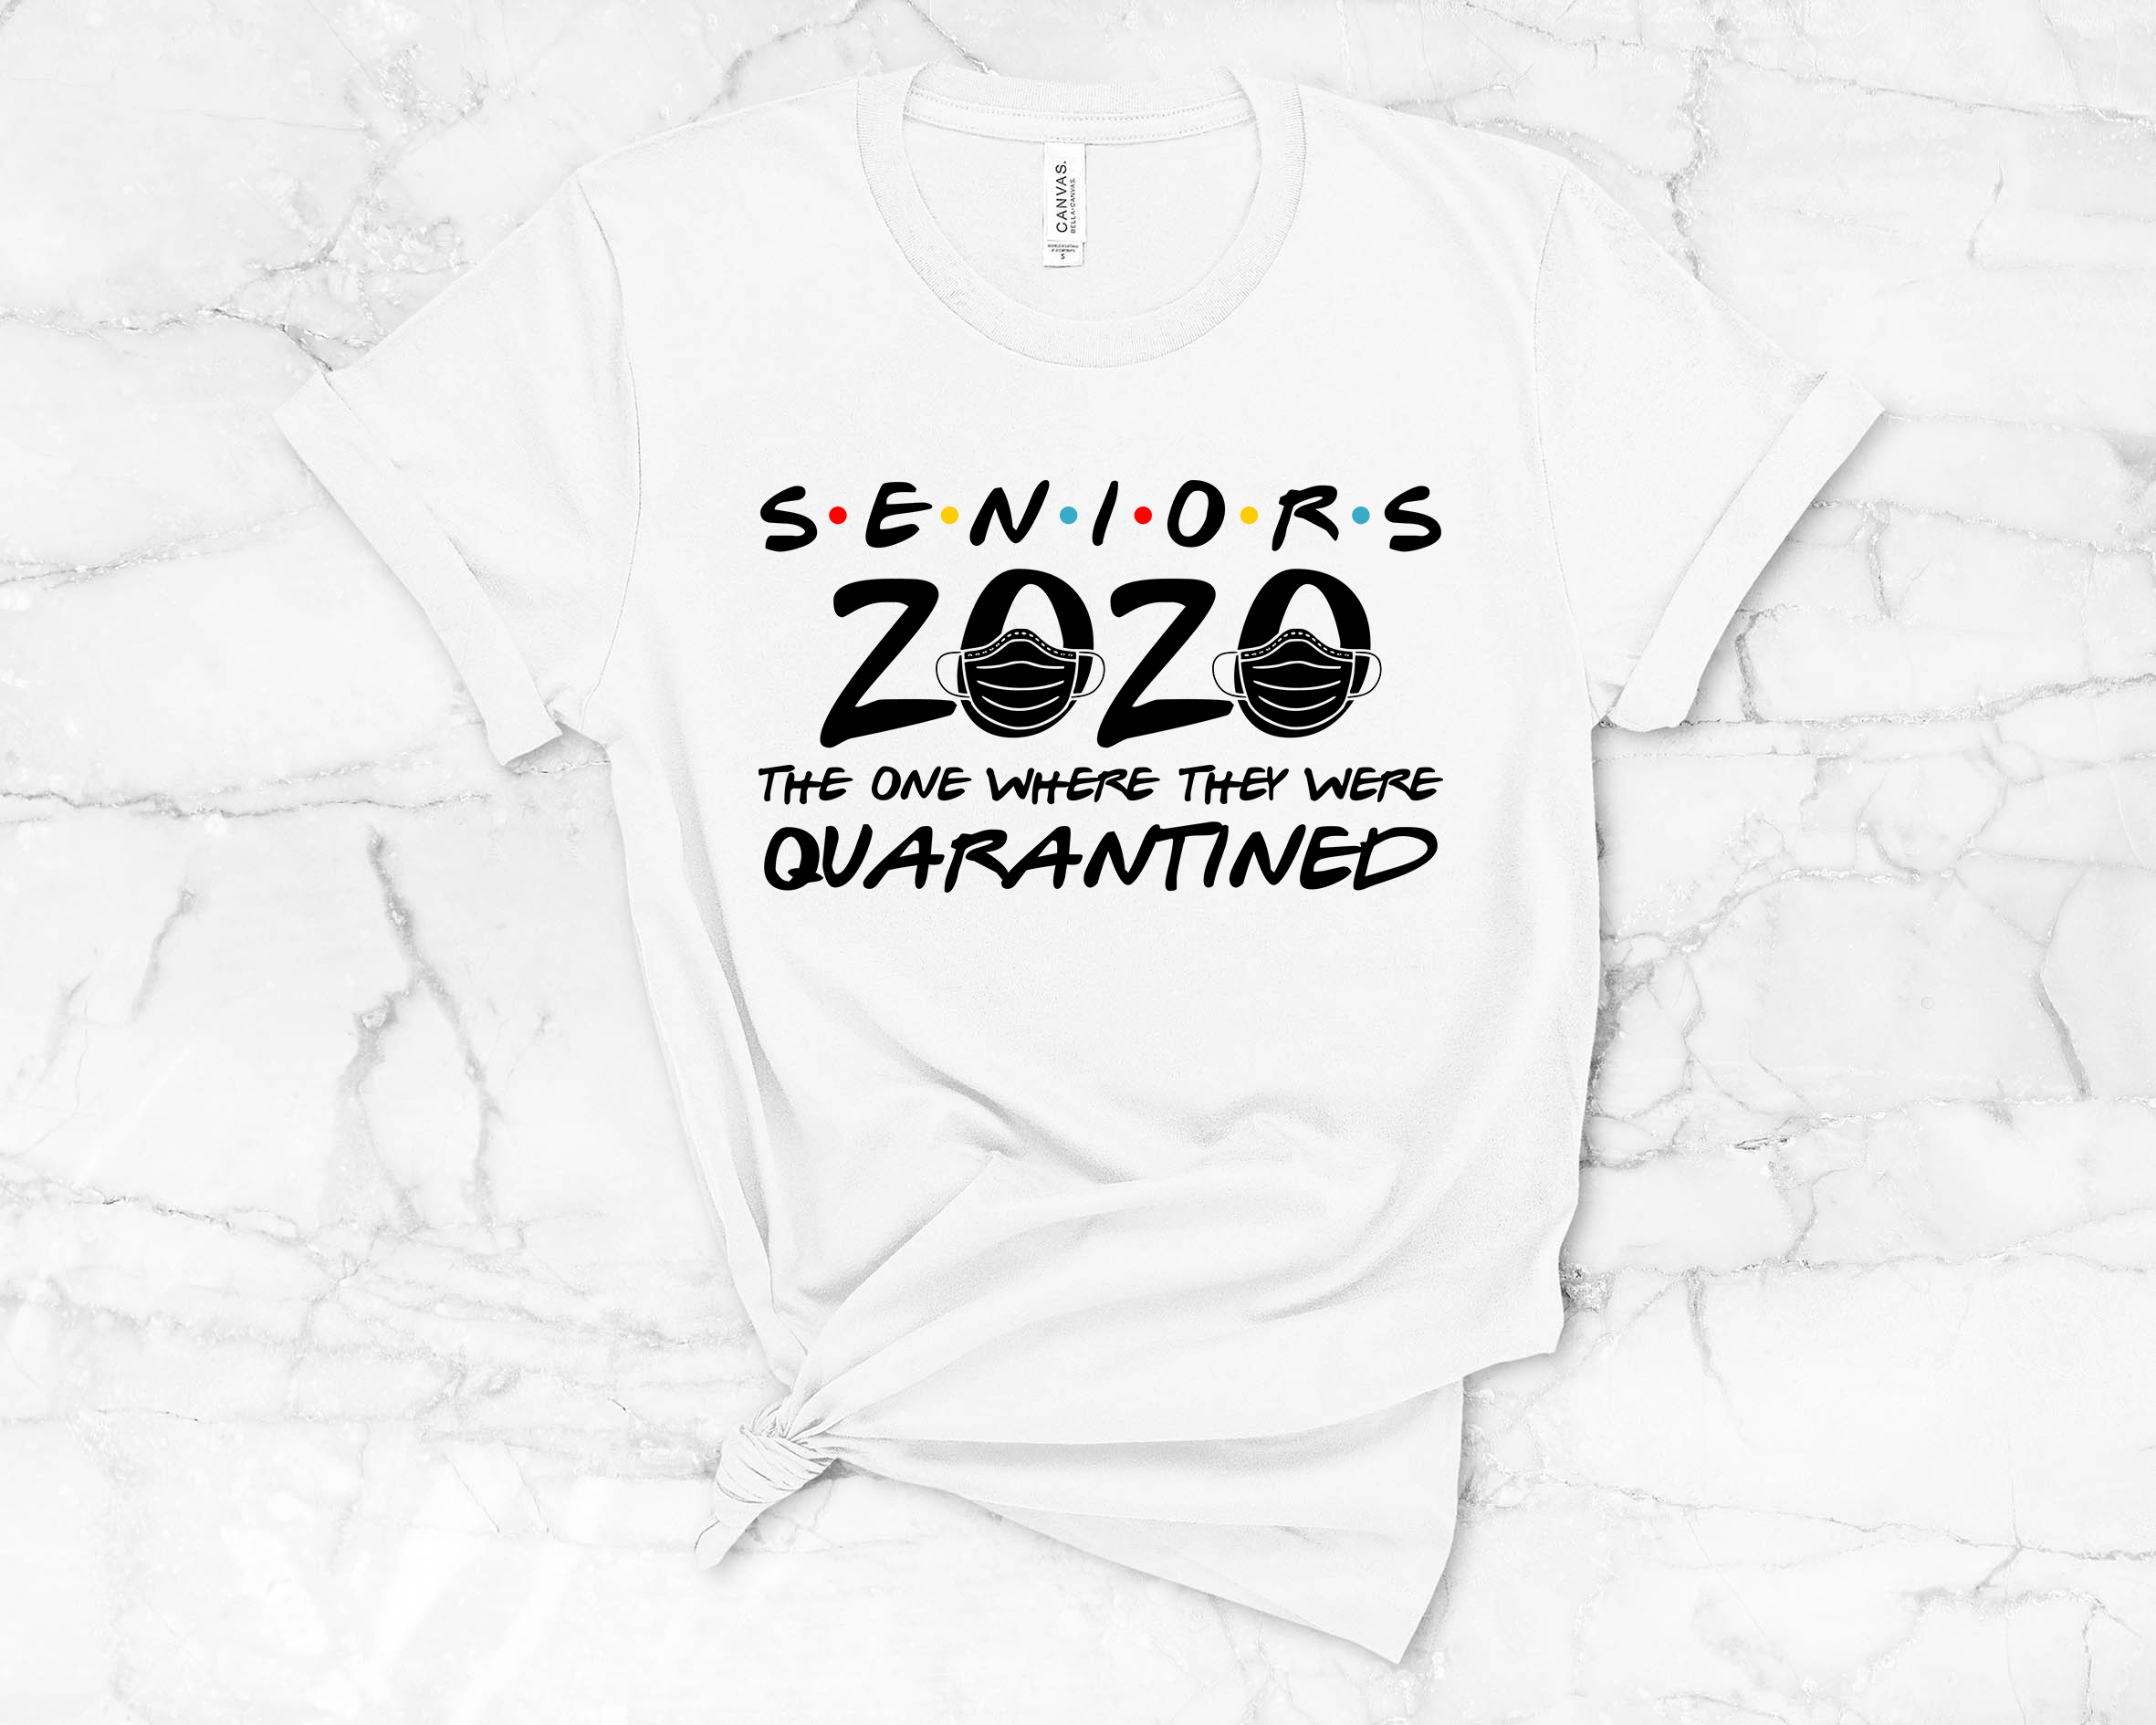 Seniors 2020 The One Where We Were Quarantined Graphic Shirt